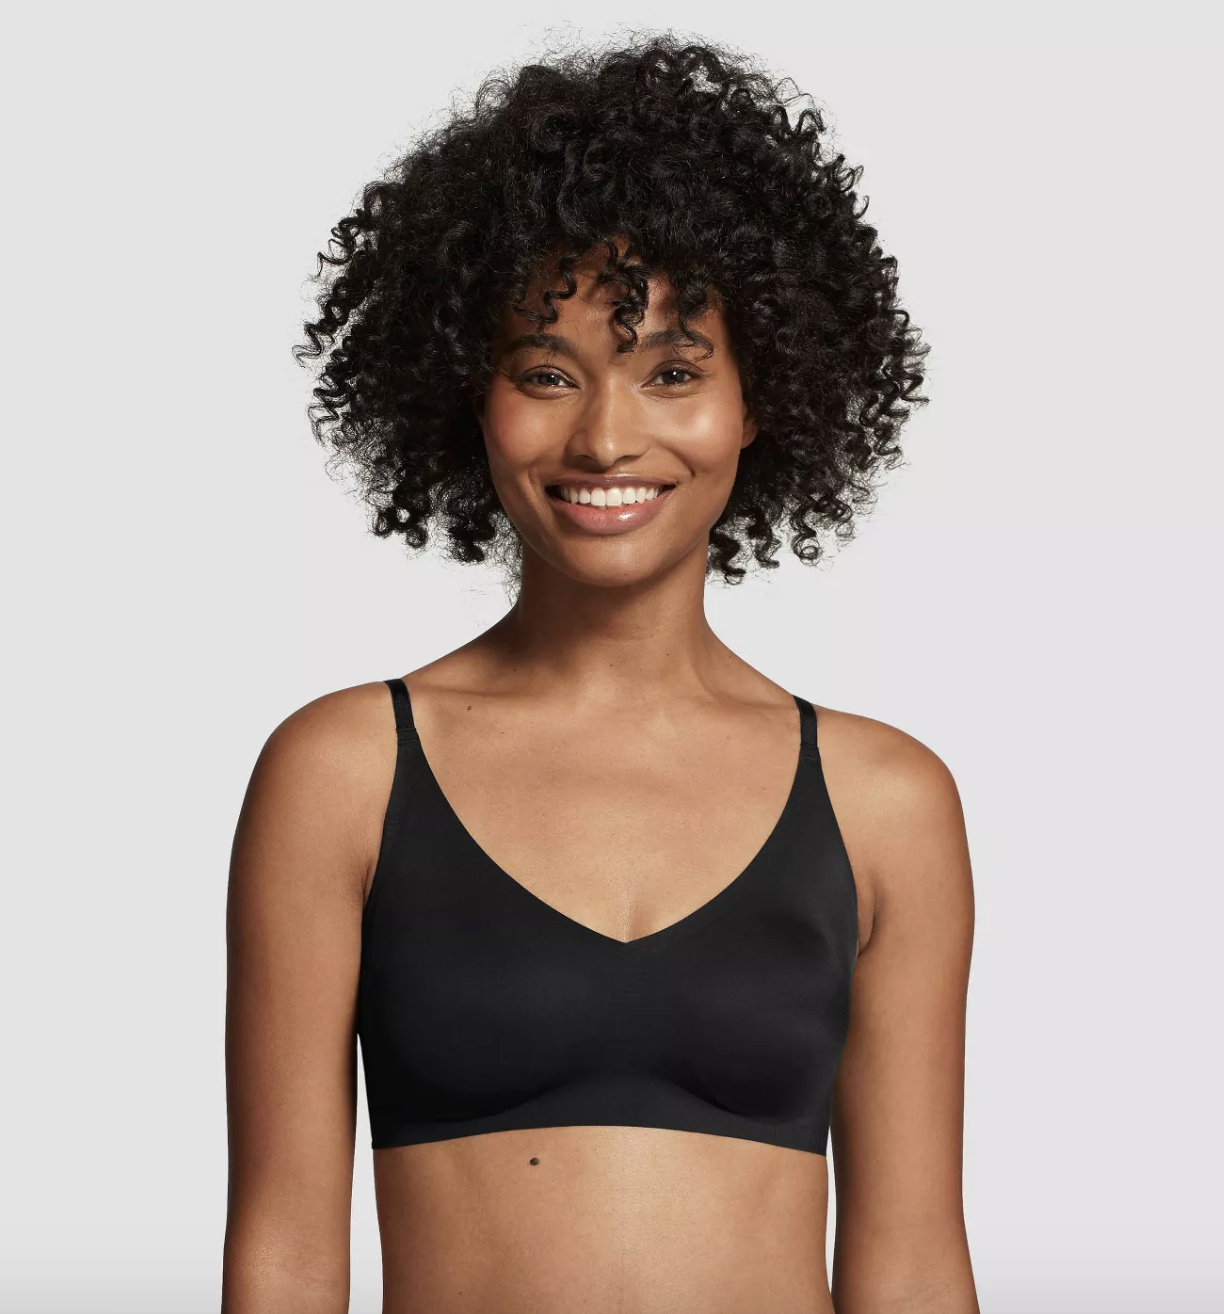 model wearing the black V-neck bralette